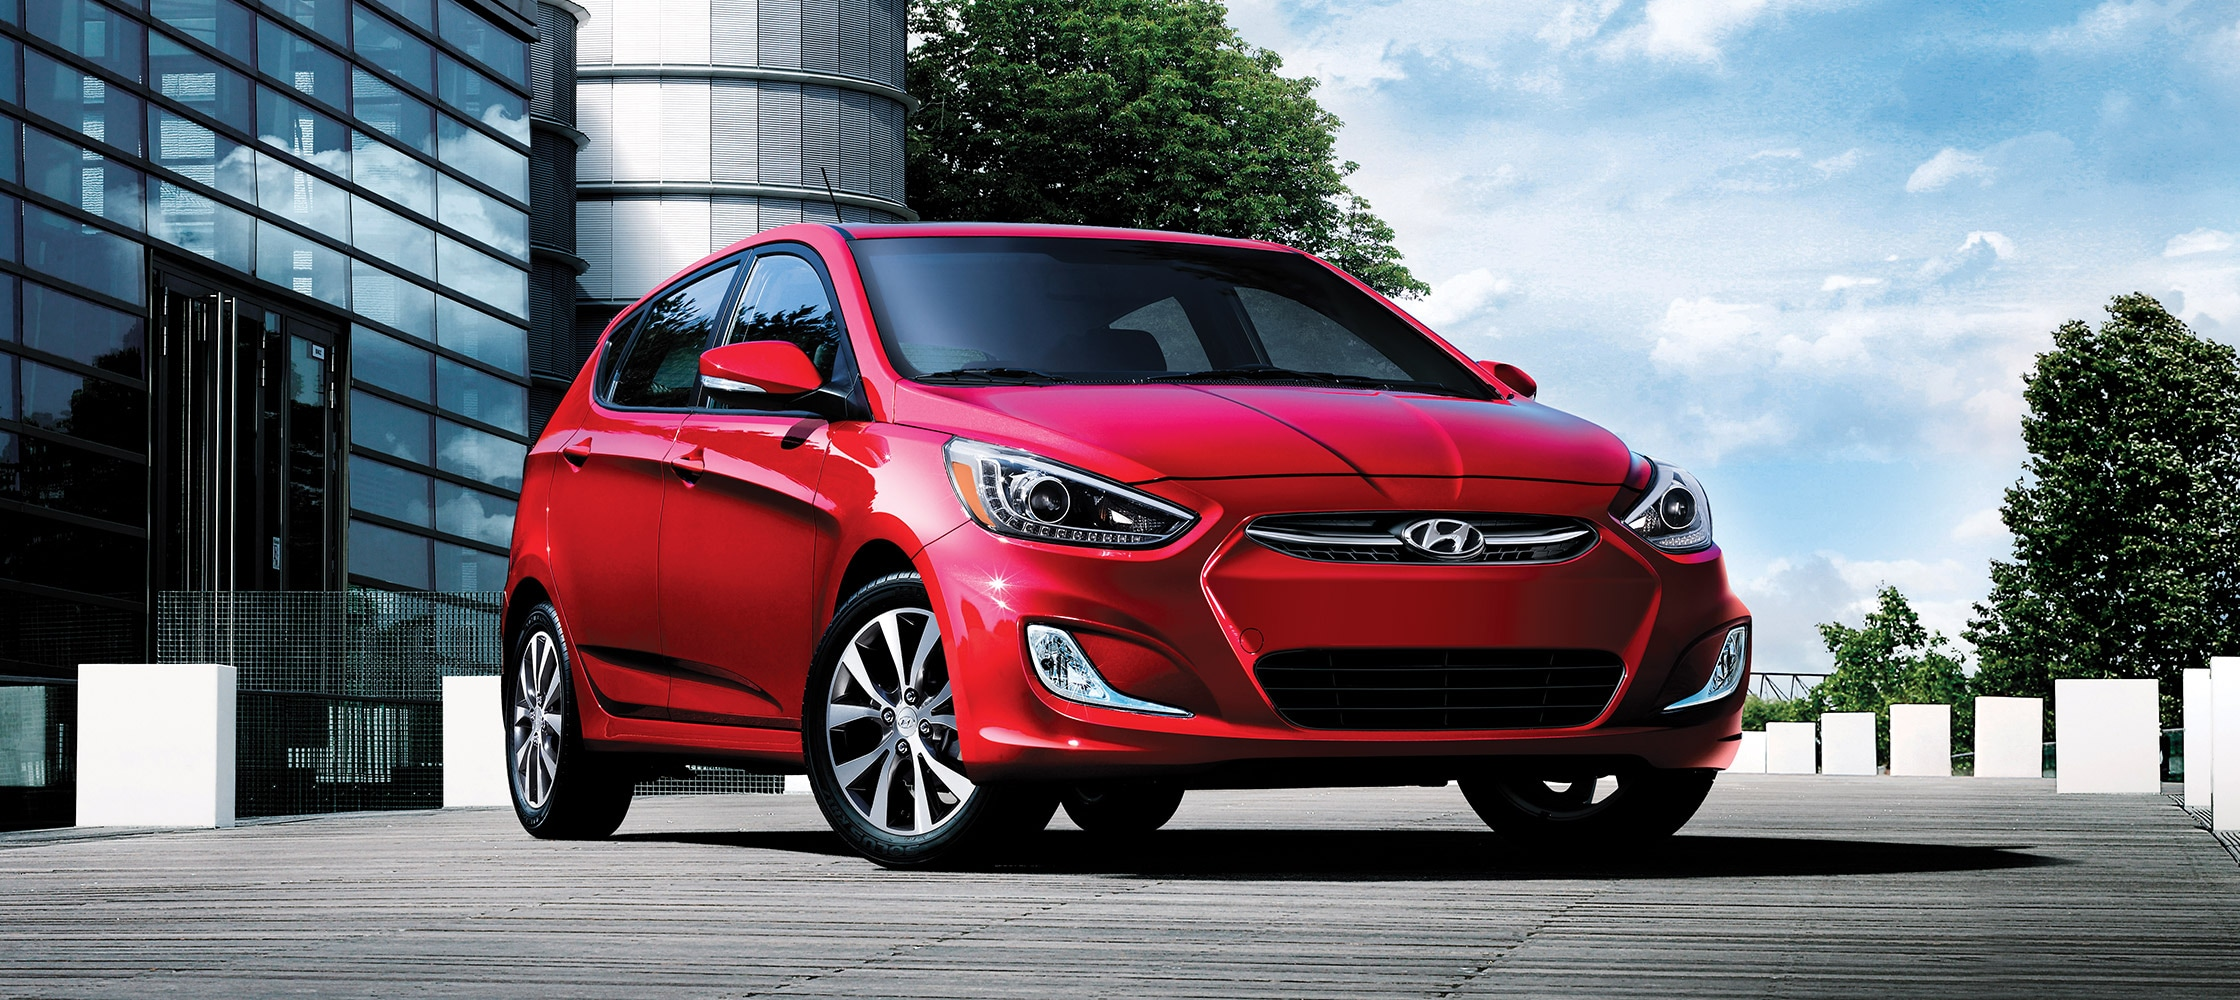 affordable hatchback car wheel steering hyundai interior looking img door space of driver s photo en accent with outwards new canada showroom